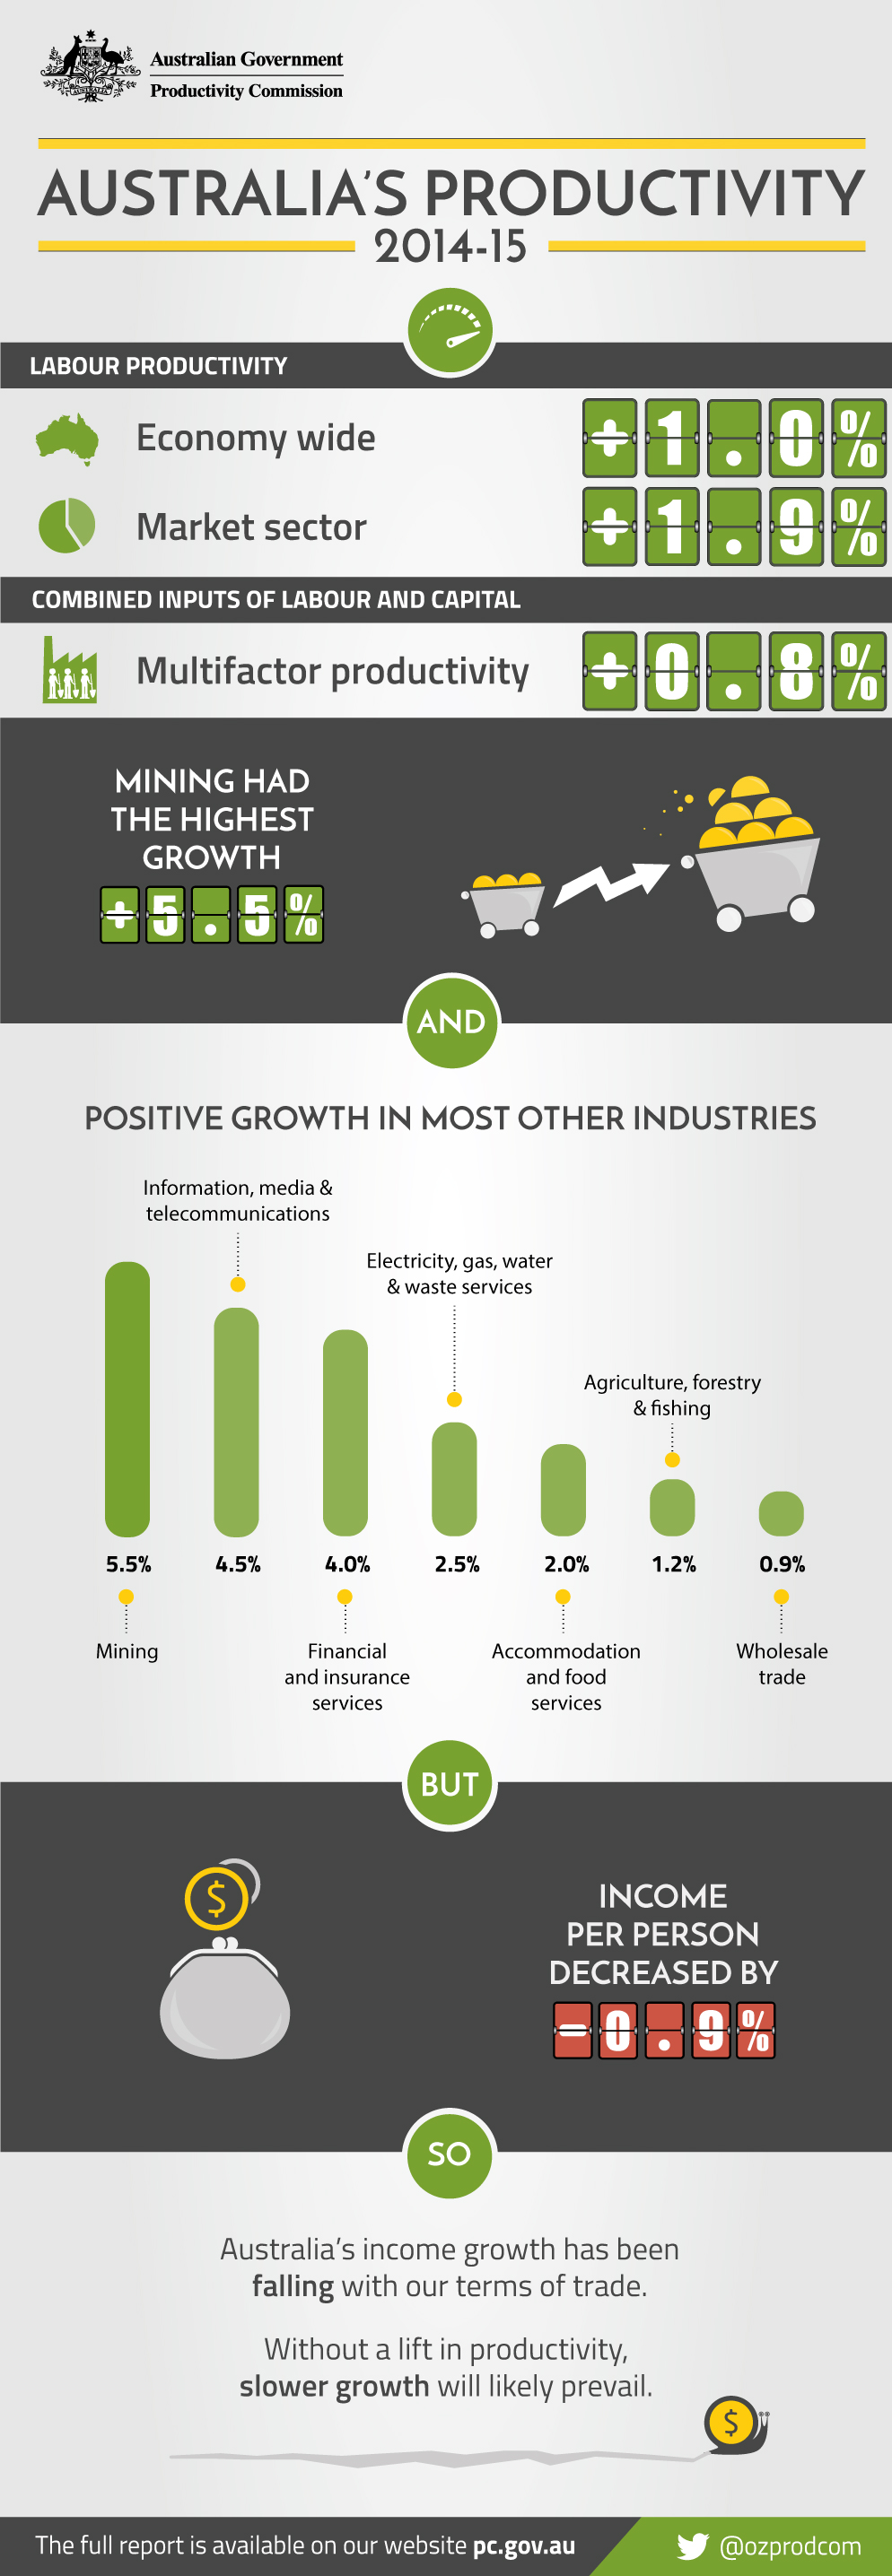 Text alternative of Australia's Productivity 2014-15 infographic follows this image.